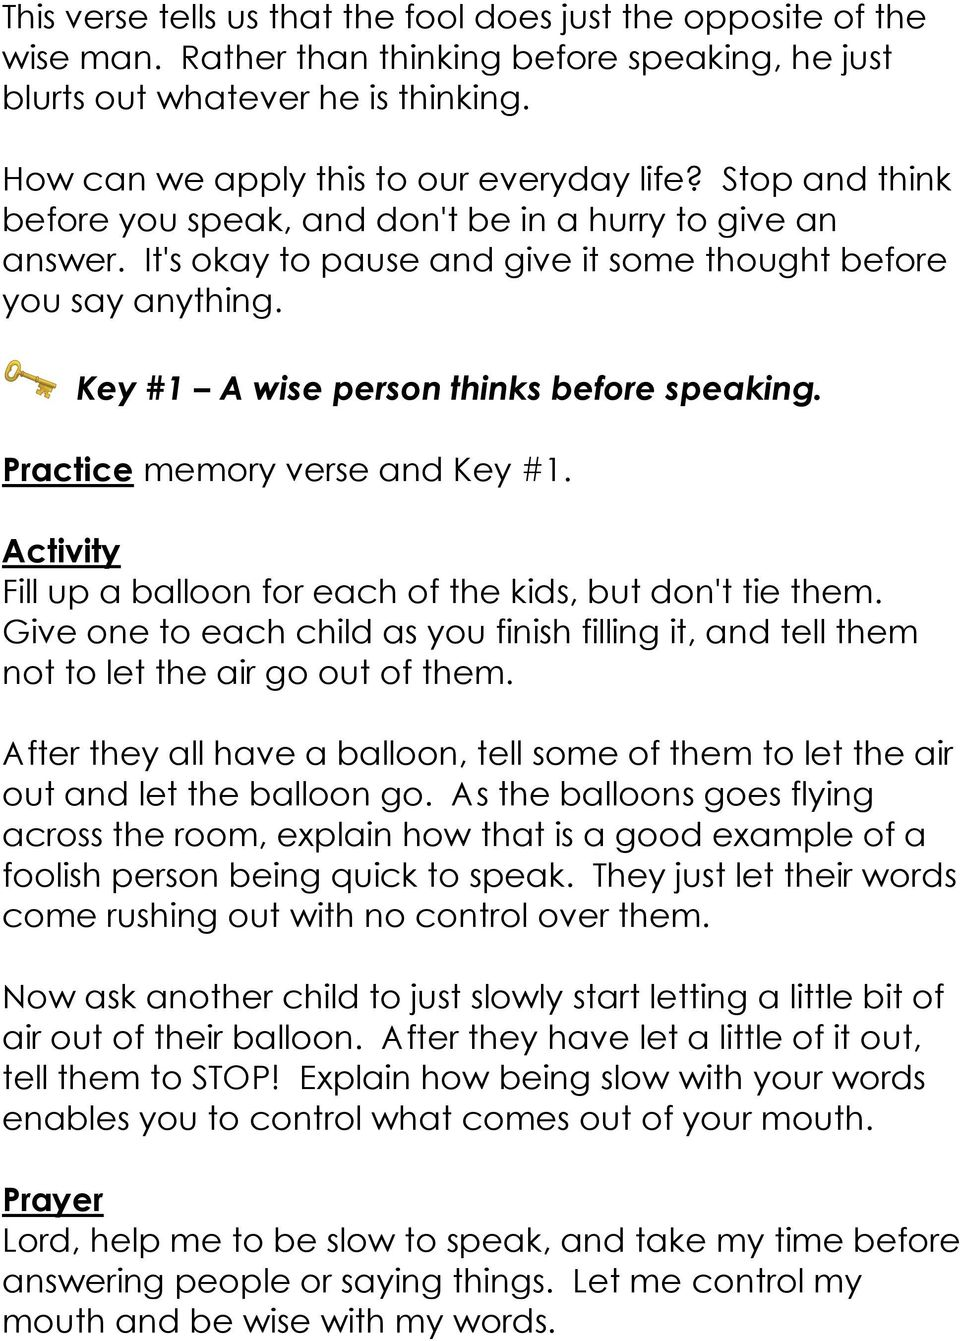 Practice memory verse and Key #1. Activity Fill up a balloon for each of the kids, but don't tie them. Give one to each child as you finish filling it, and tell them not to let the air go out of them.